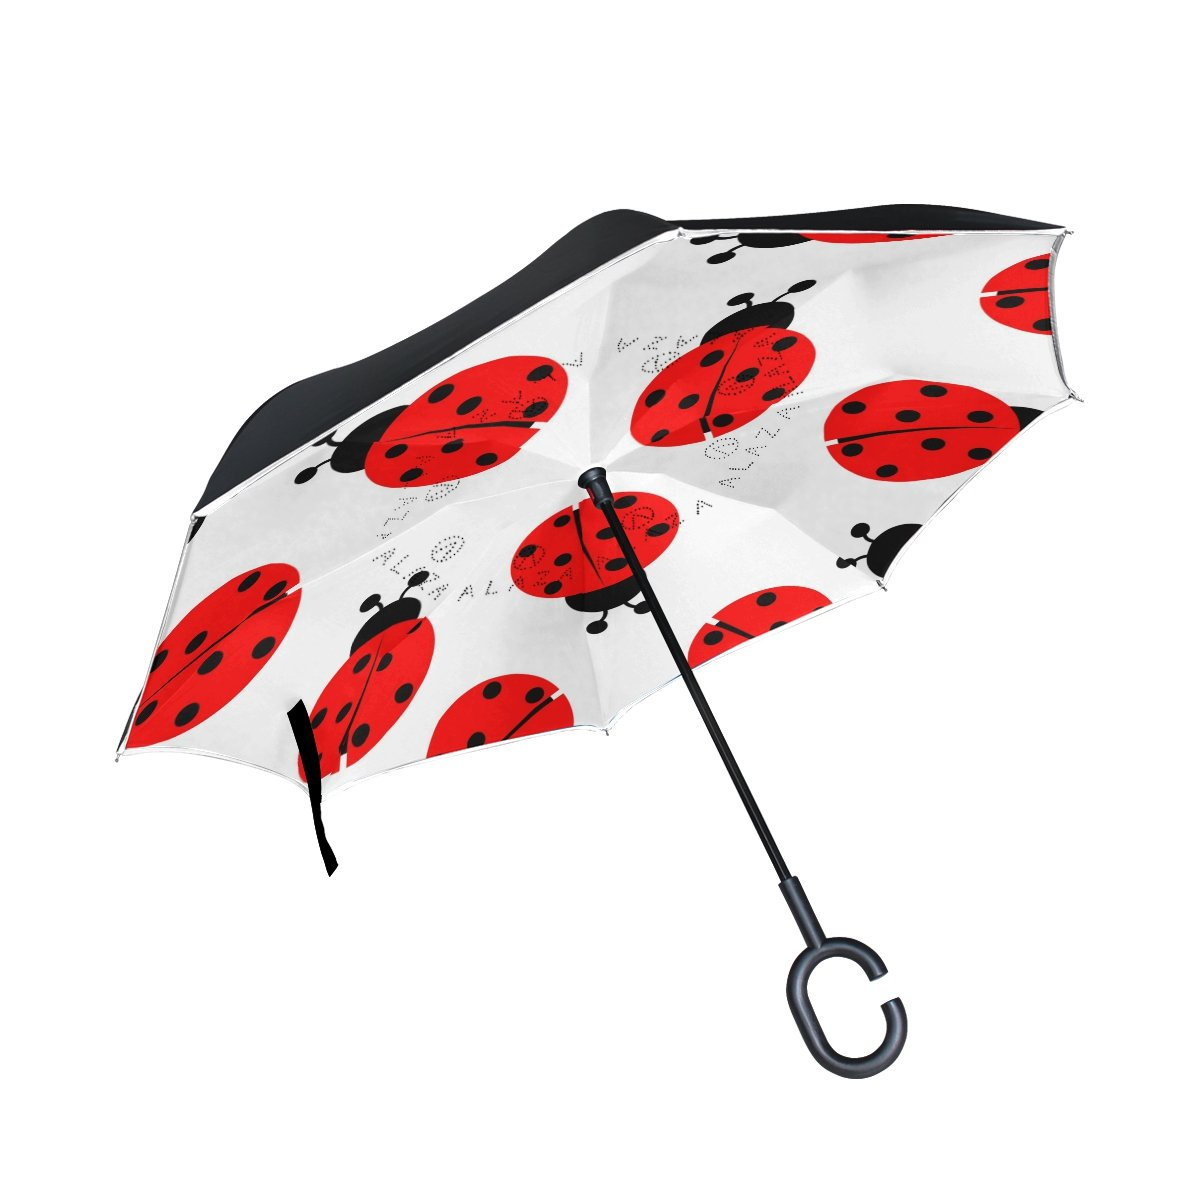 7451cc17858f imobaby Ladybug Reverse Folding Double Layer Windproof Inverted Umbrella  with C-shaped Hands Free Handle for Travelling and Car Use